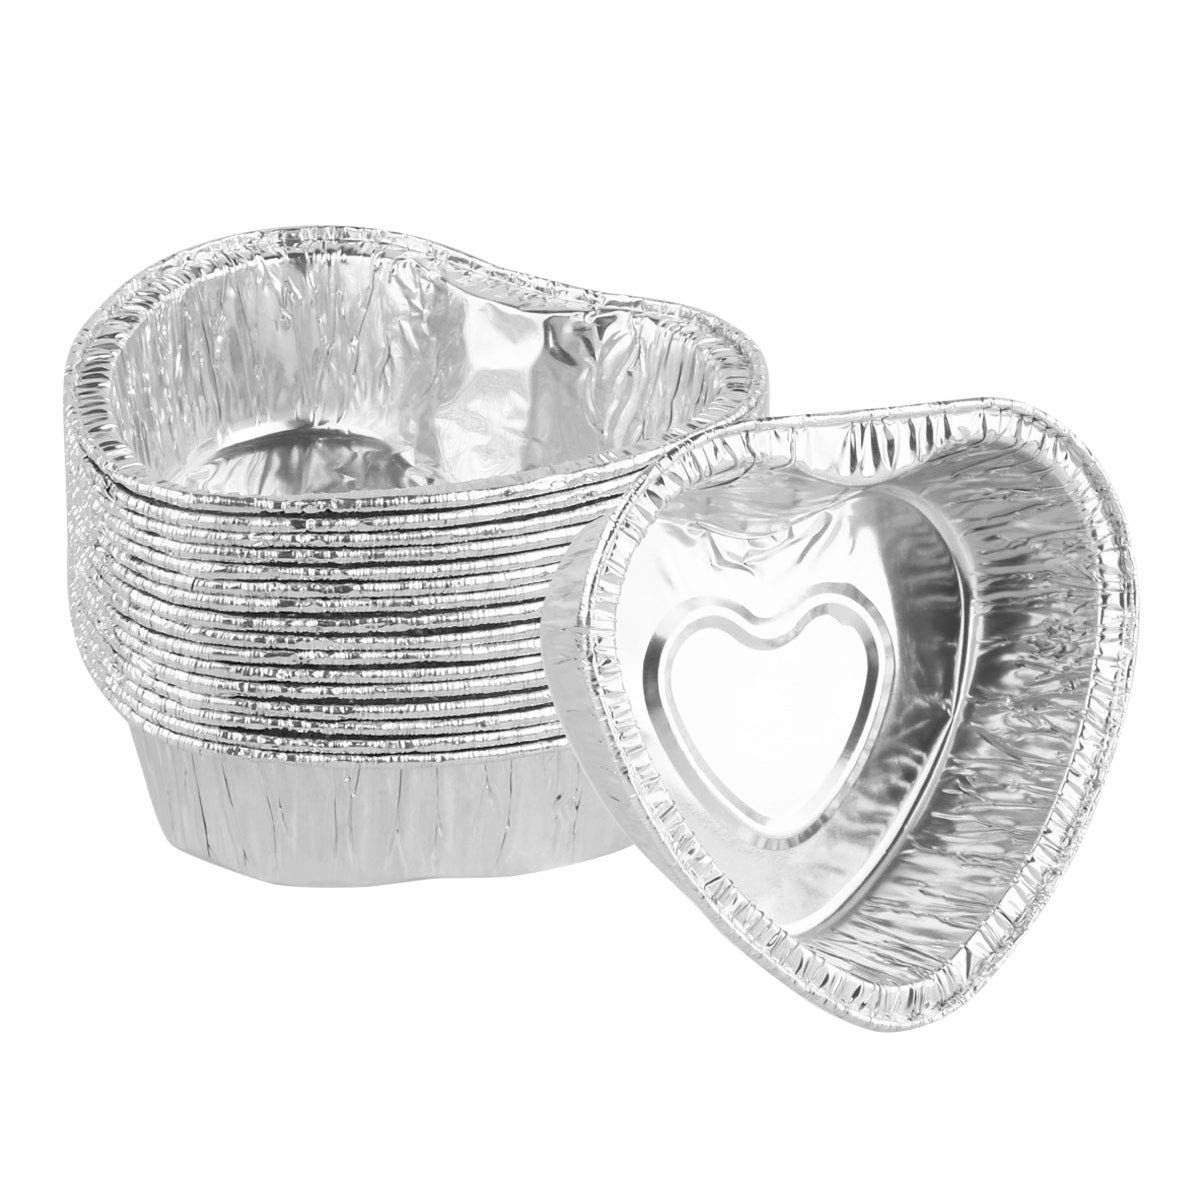 FEESHOW 60pcs Heart Shaped Aluminum Foil Disposable Baking Ramekins, Mini Baking Cup Muffin Cupcake Liners Silver One Size